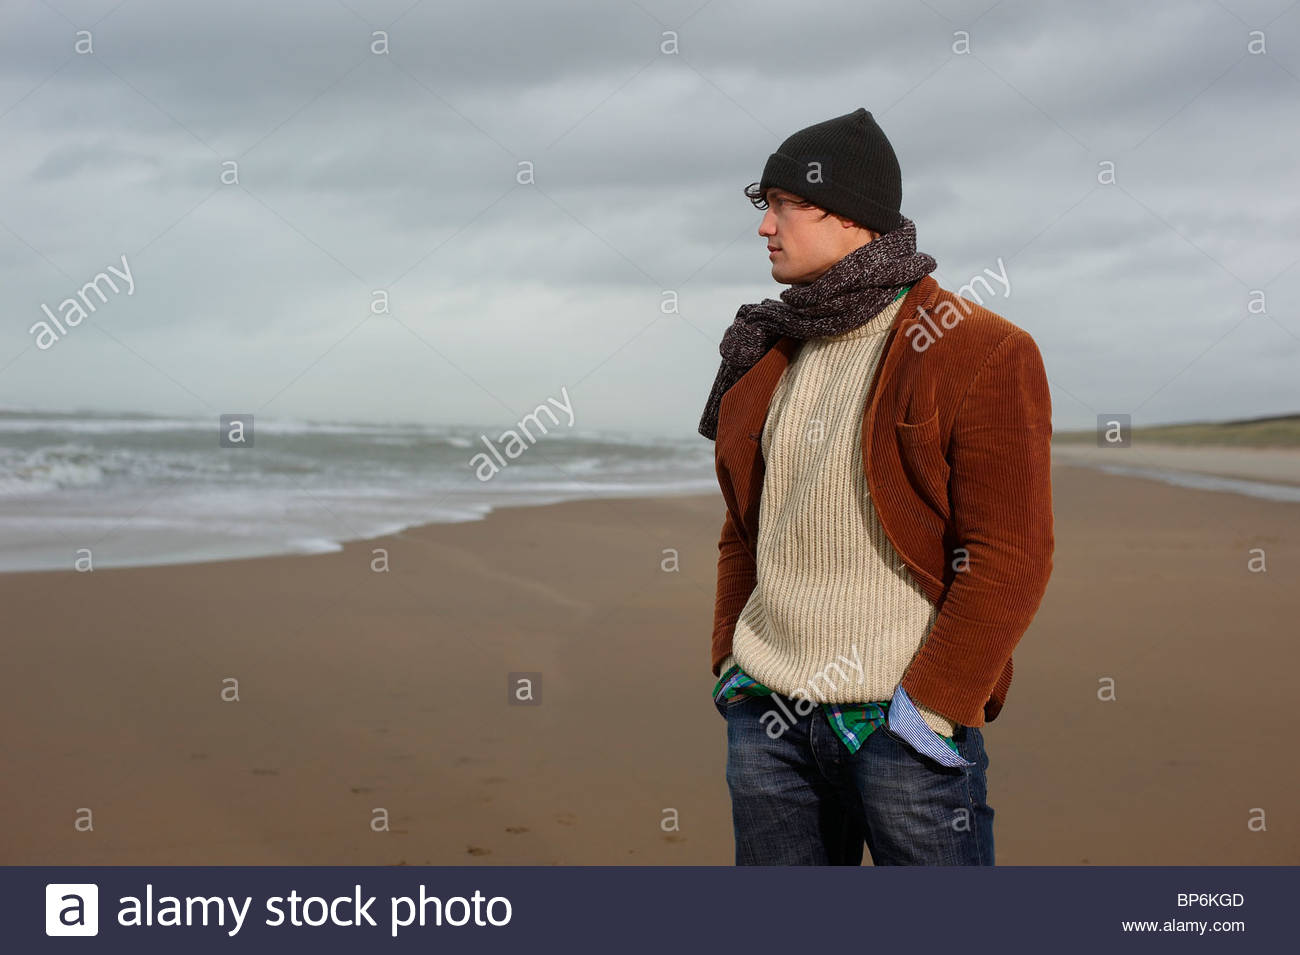 A man standing on a beach on a winters day looking out to sea - Stock Image